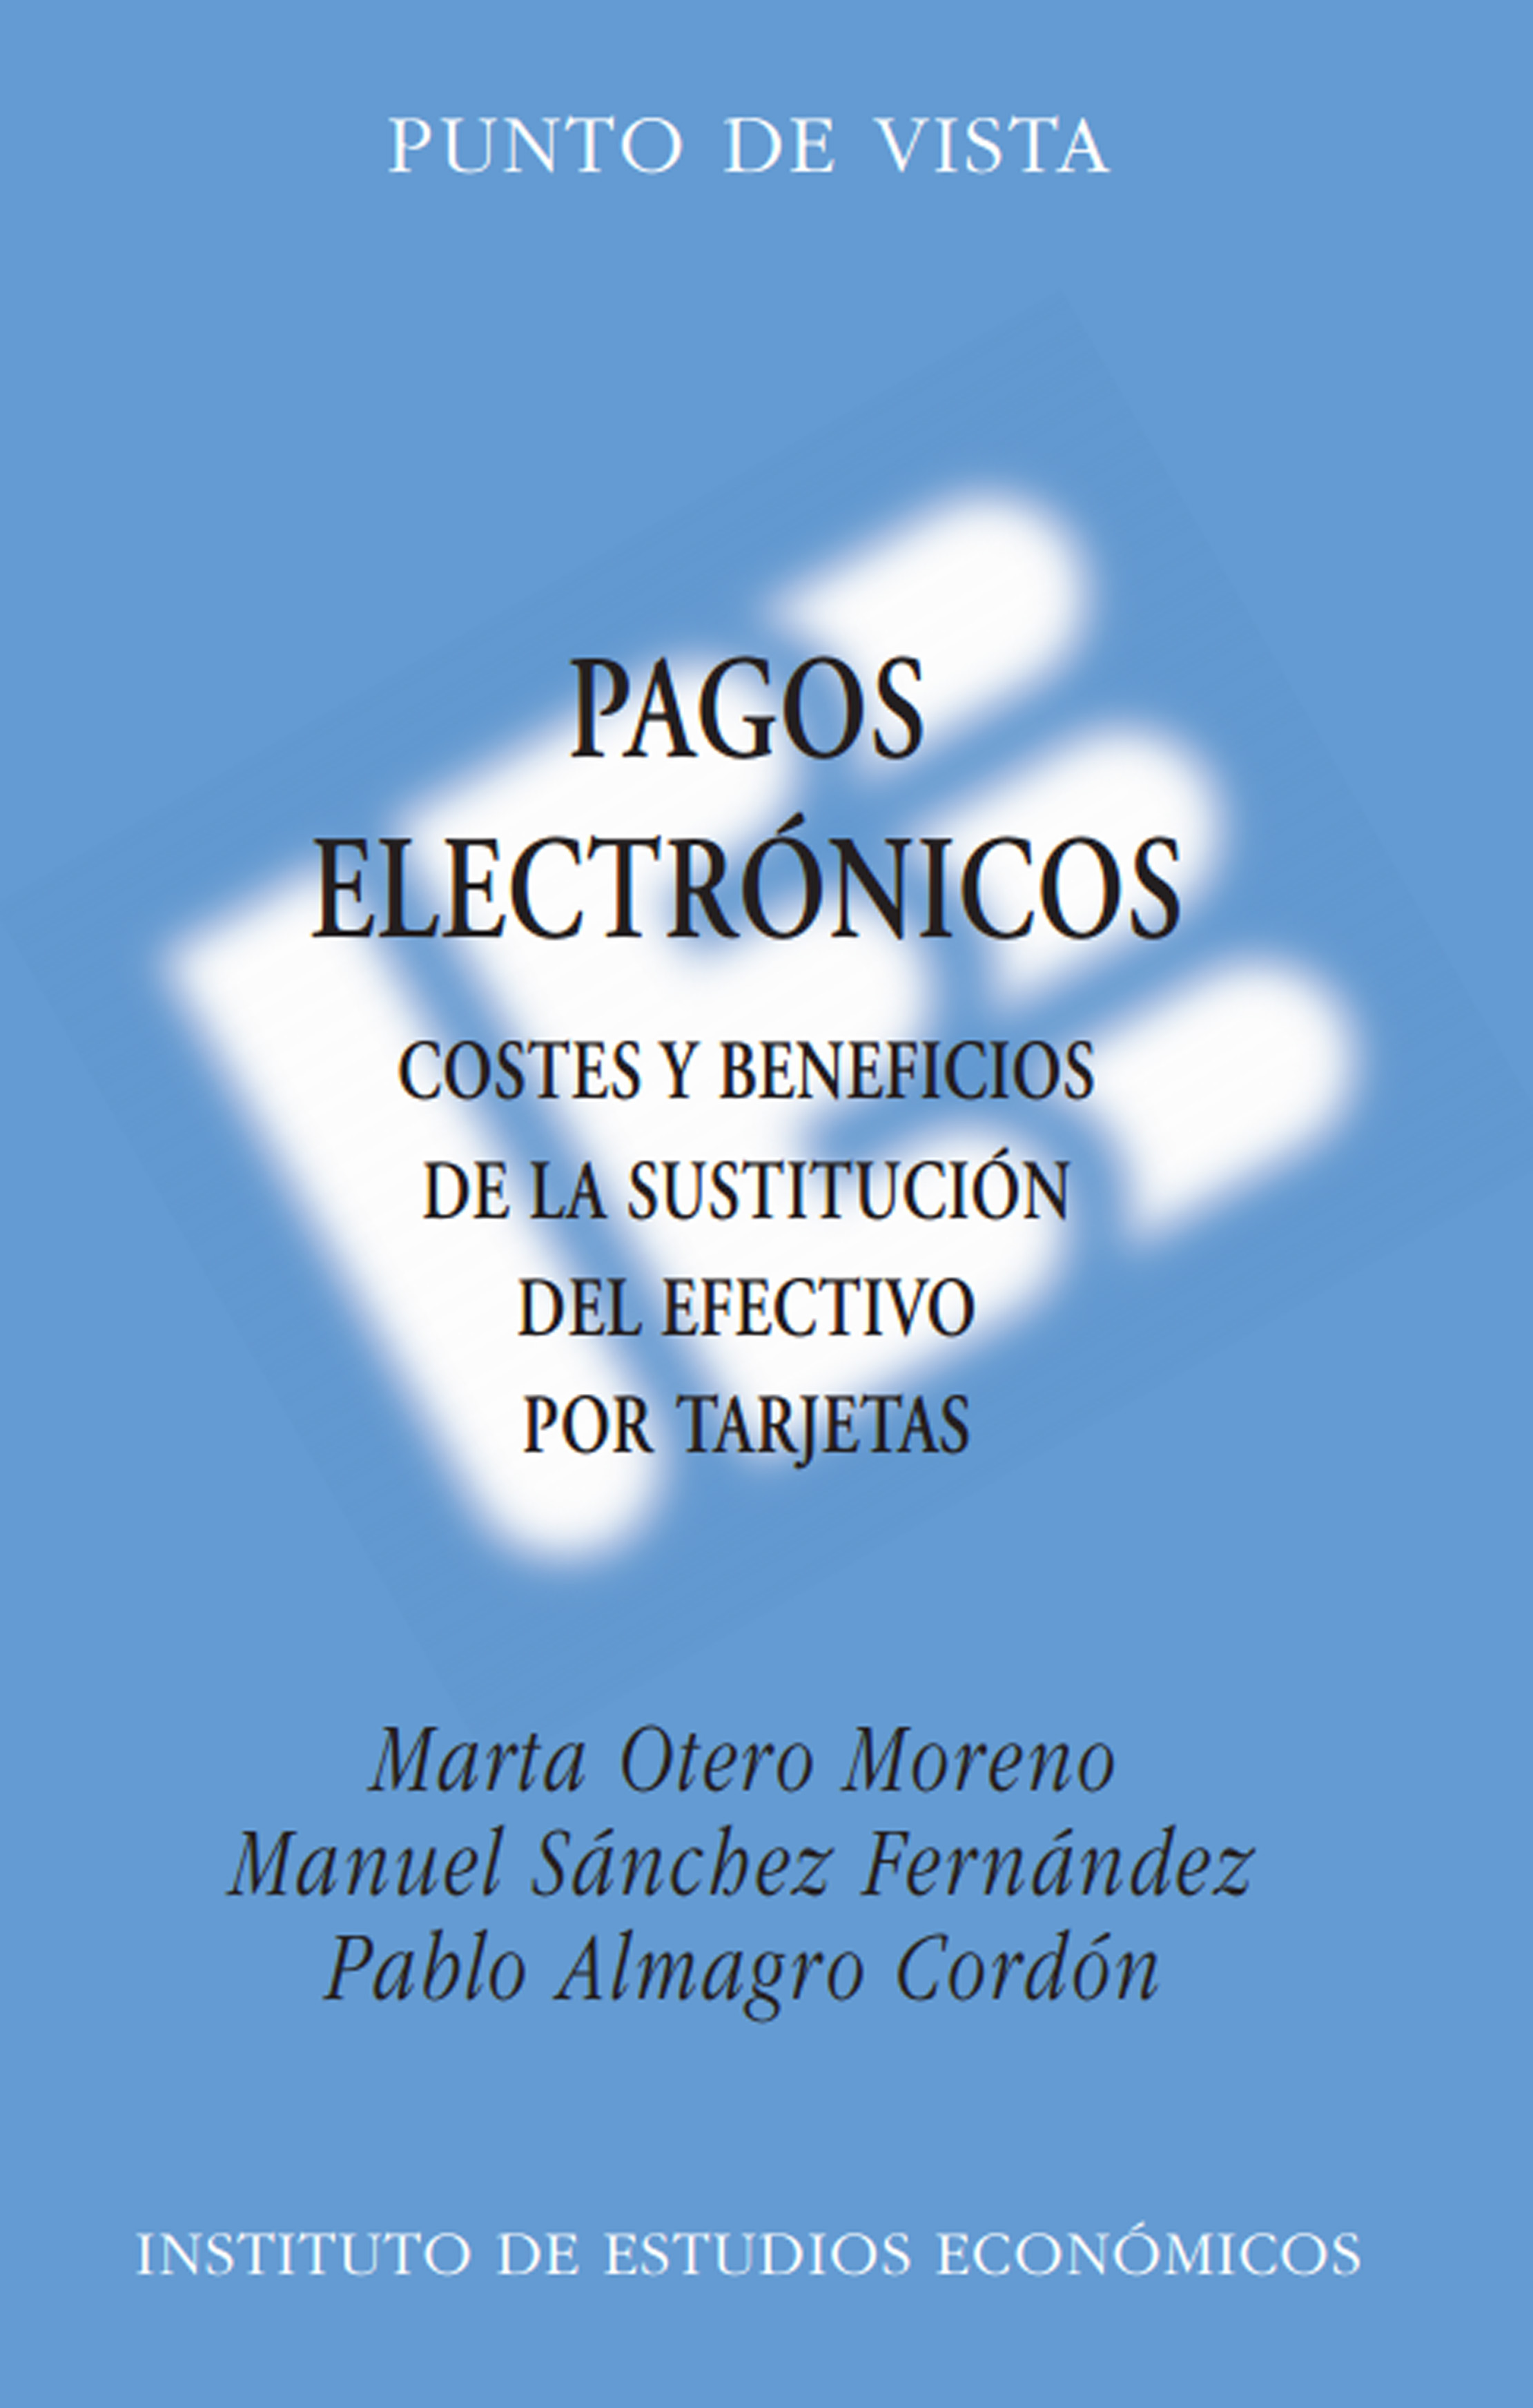 00-Cubierta Pagos electronicos (OK)_ 25-6-13png_Page1_1